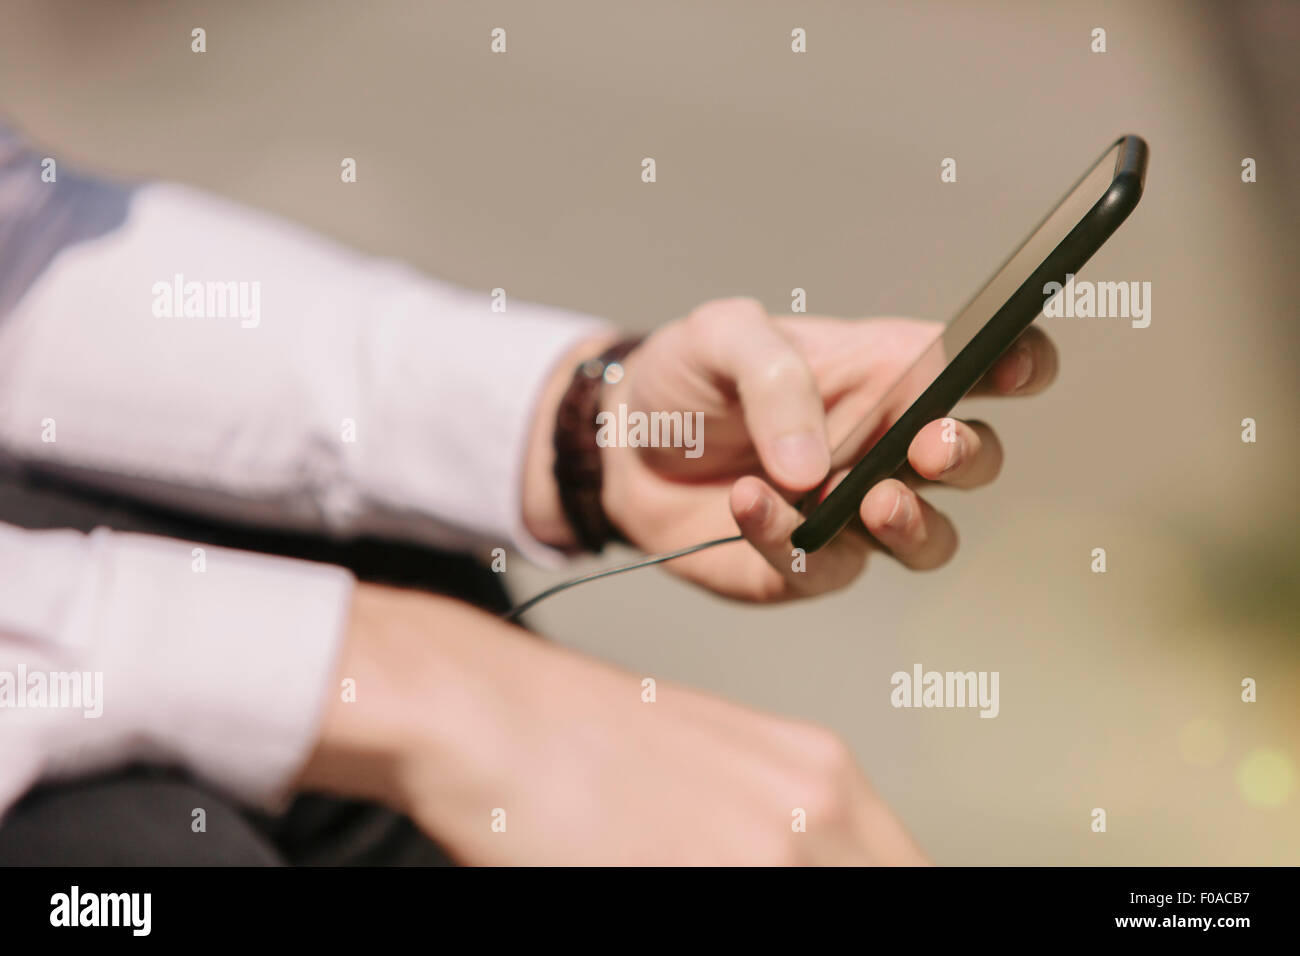 Hands of young businessman selecting music on smartphone - Stock Image